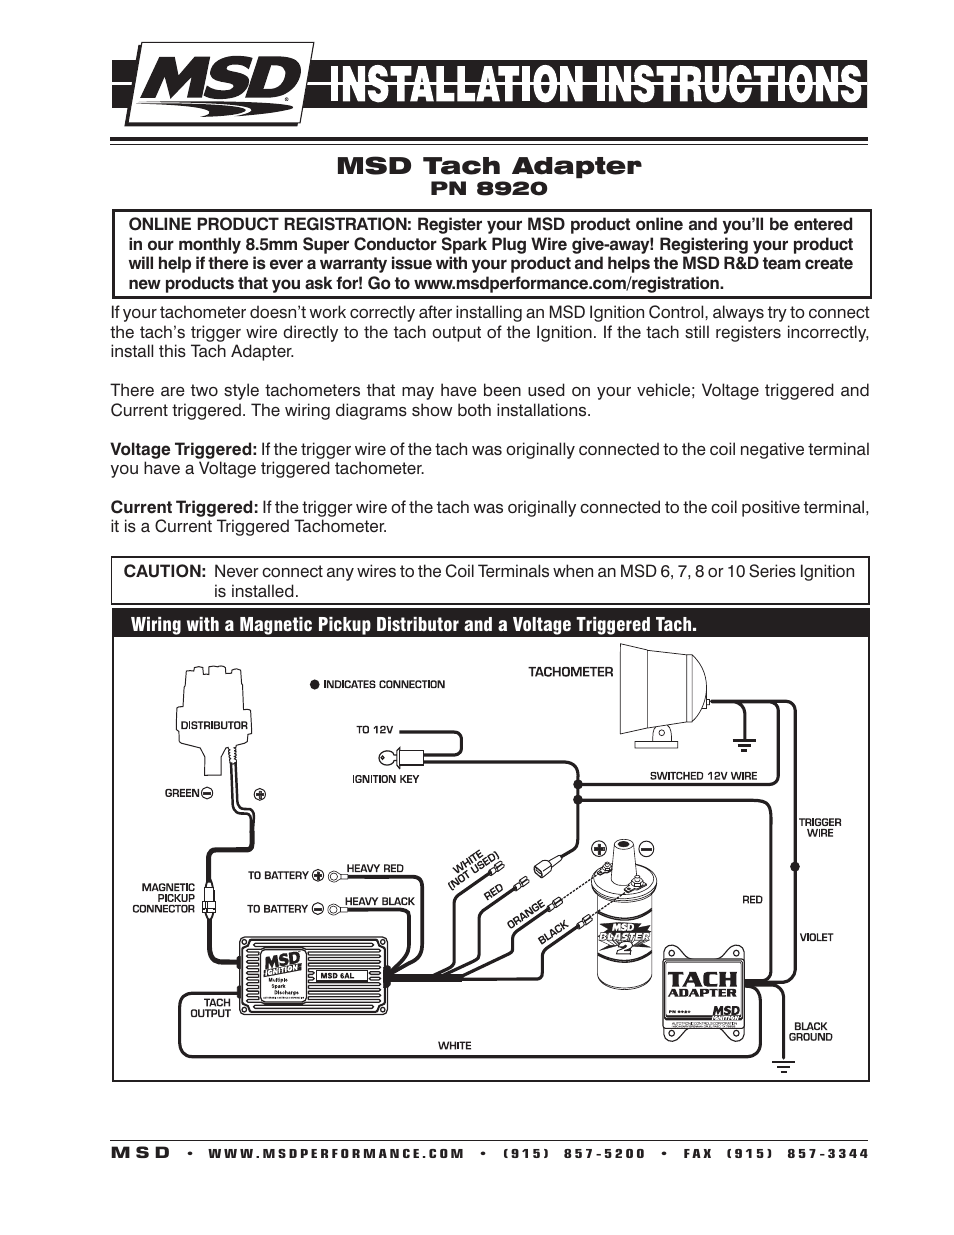 hight resolution of msd 8920 tach adapter magnetic trigger installation user manual 2 mix msd 8920 tach adapter